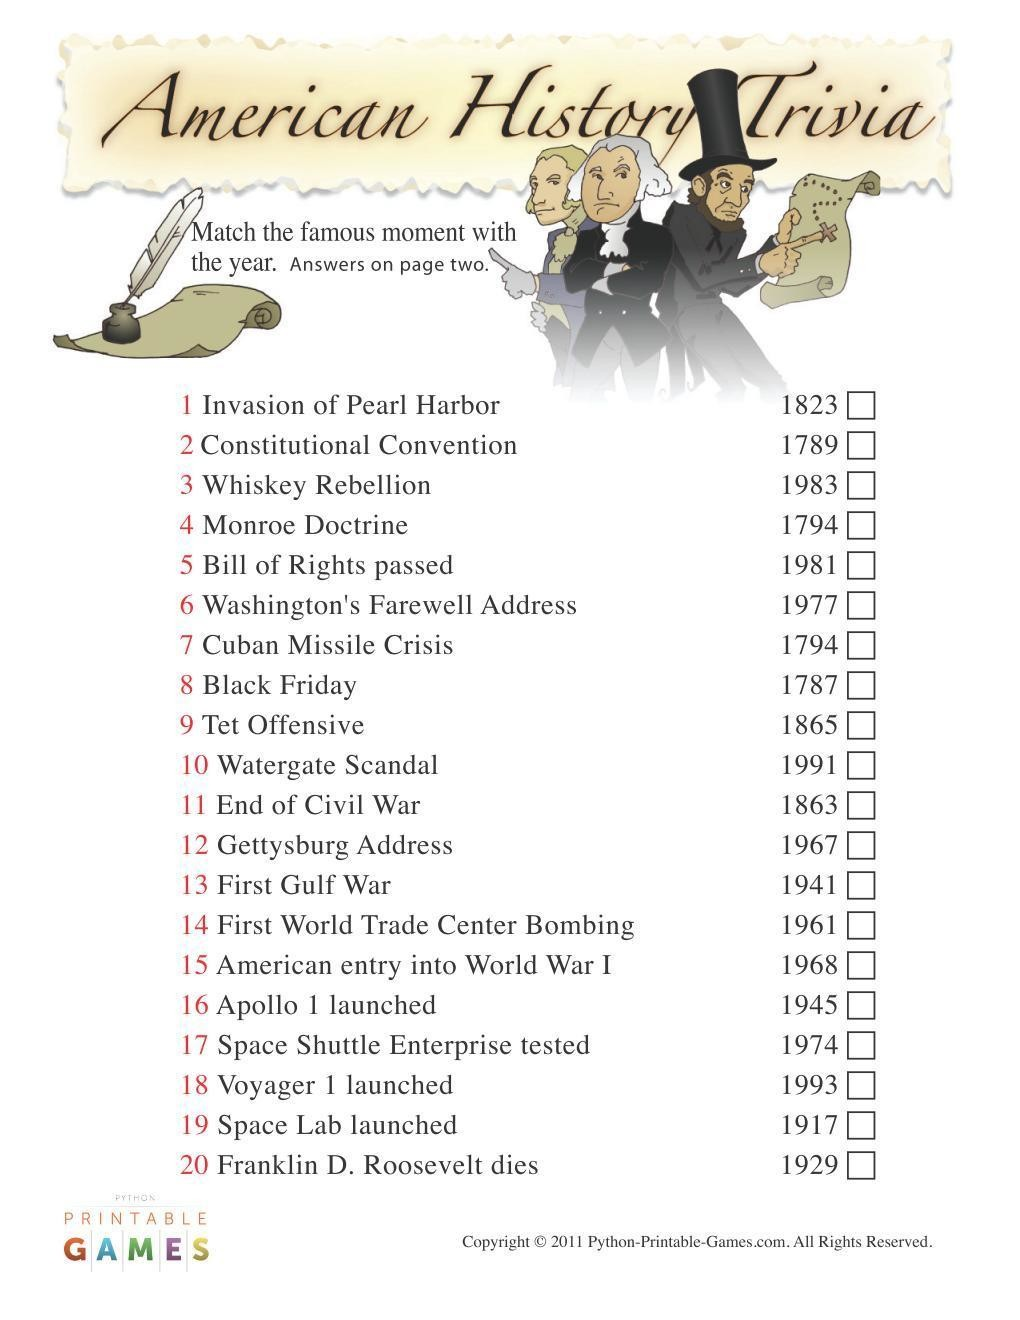 picture relating to American History Trivia Questions and Answers Printable titled American Game titles: American Record Trivia